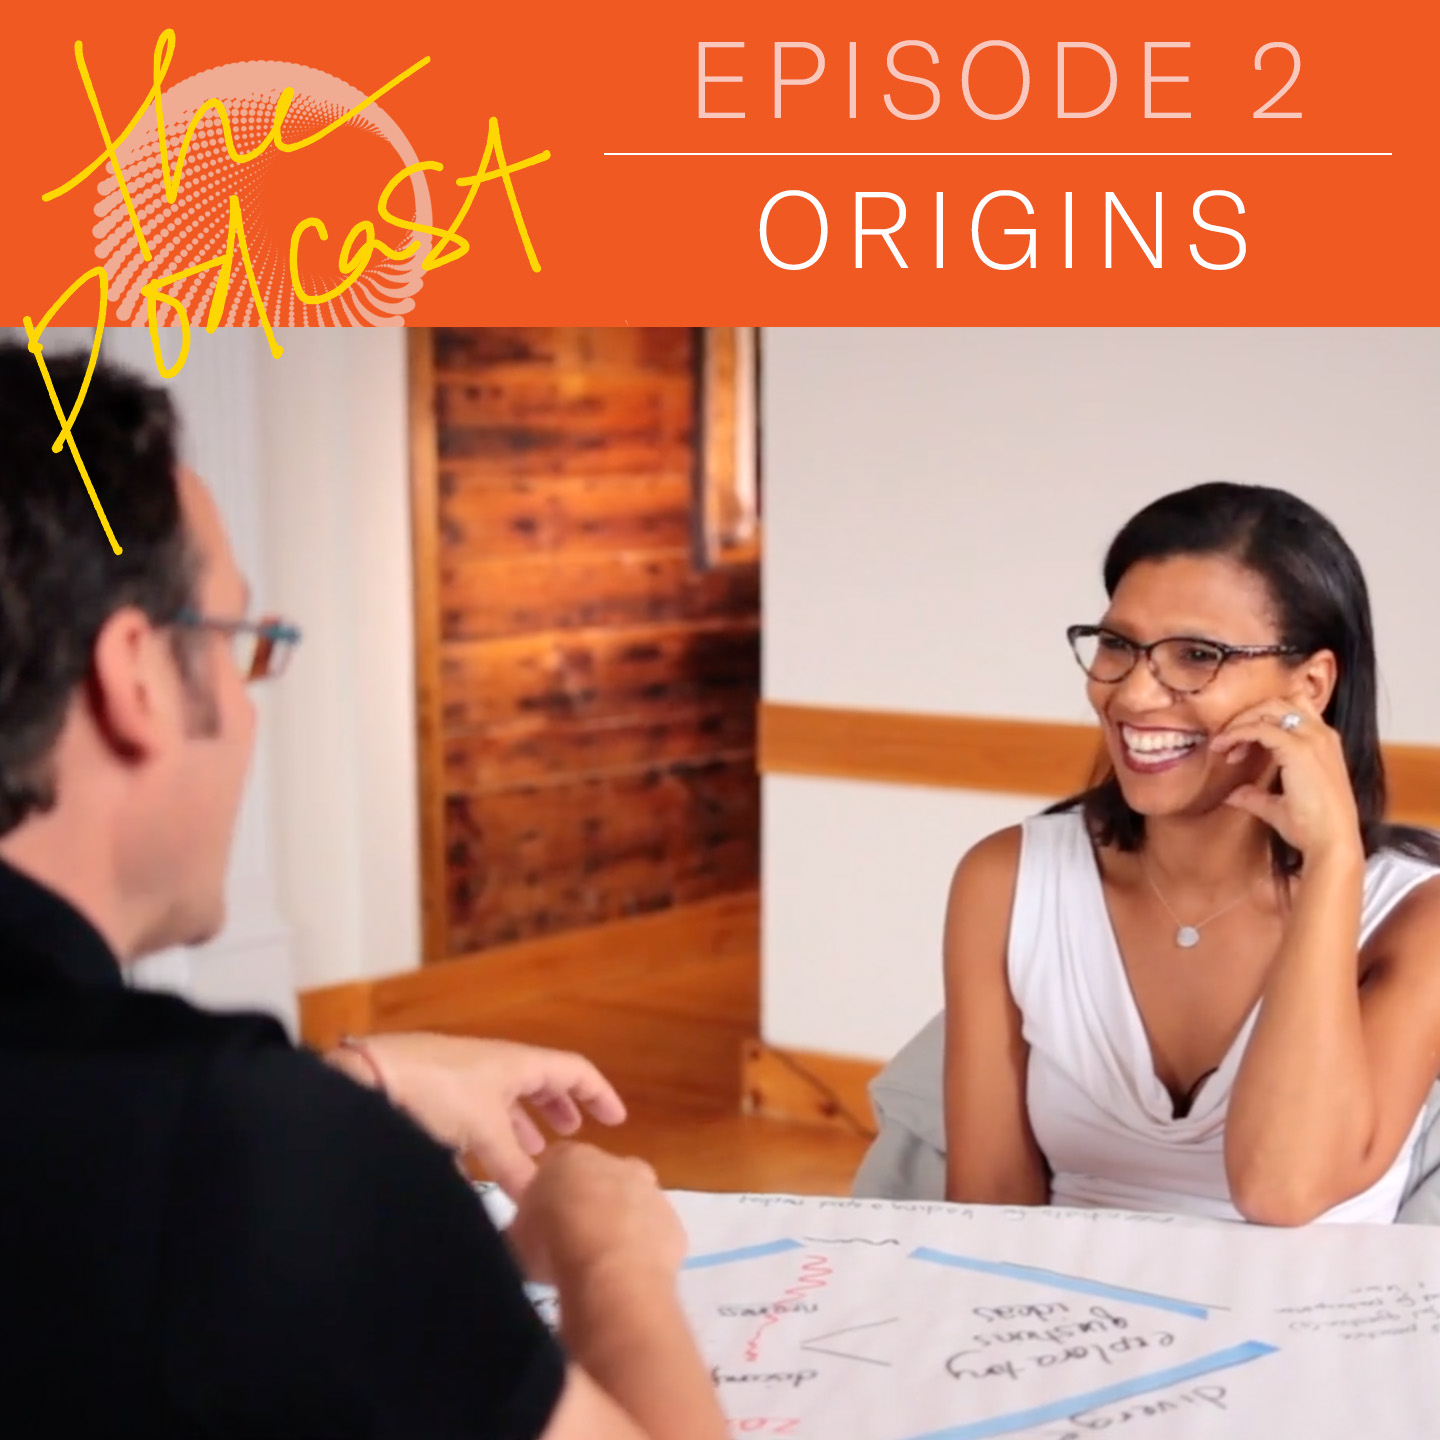 Episode 1.02: Origins   HOW COLLABORATORS STAY IN RELATIONSHIP ALONG THE PATH OF SYSTEMS CHANGE  Tim and Tuesday recap the facilitation paths that led them towards their collaboration on equity, big systems change, and leadership.  For show notes, visit the episode page.  || October 2, 2018